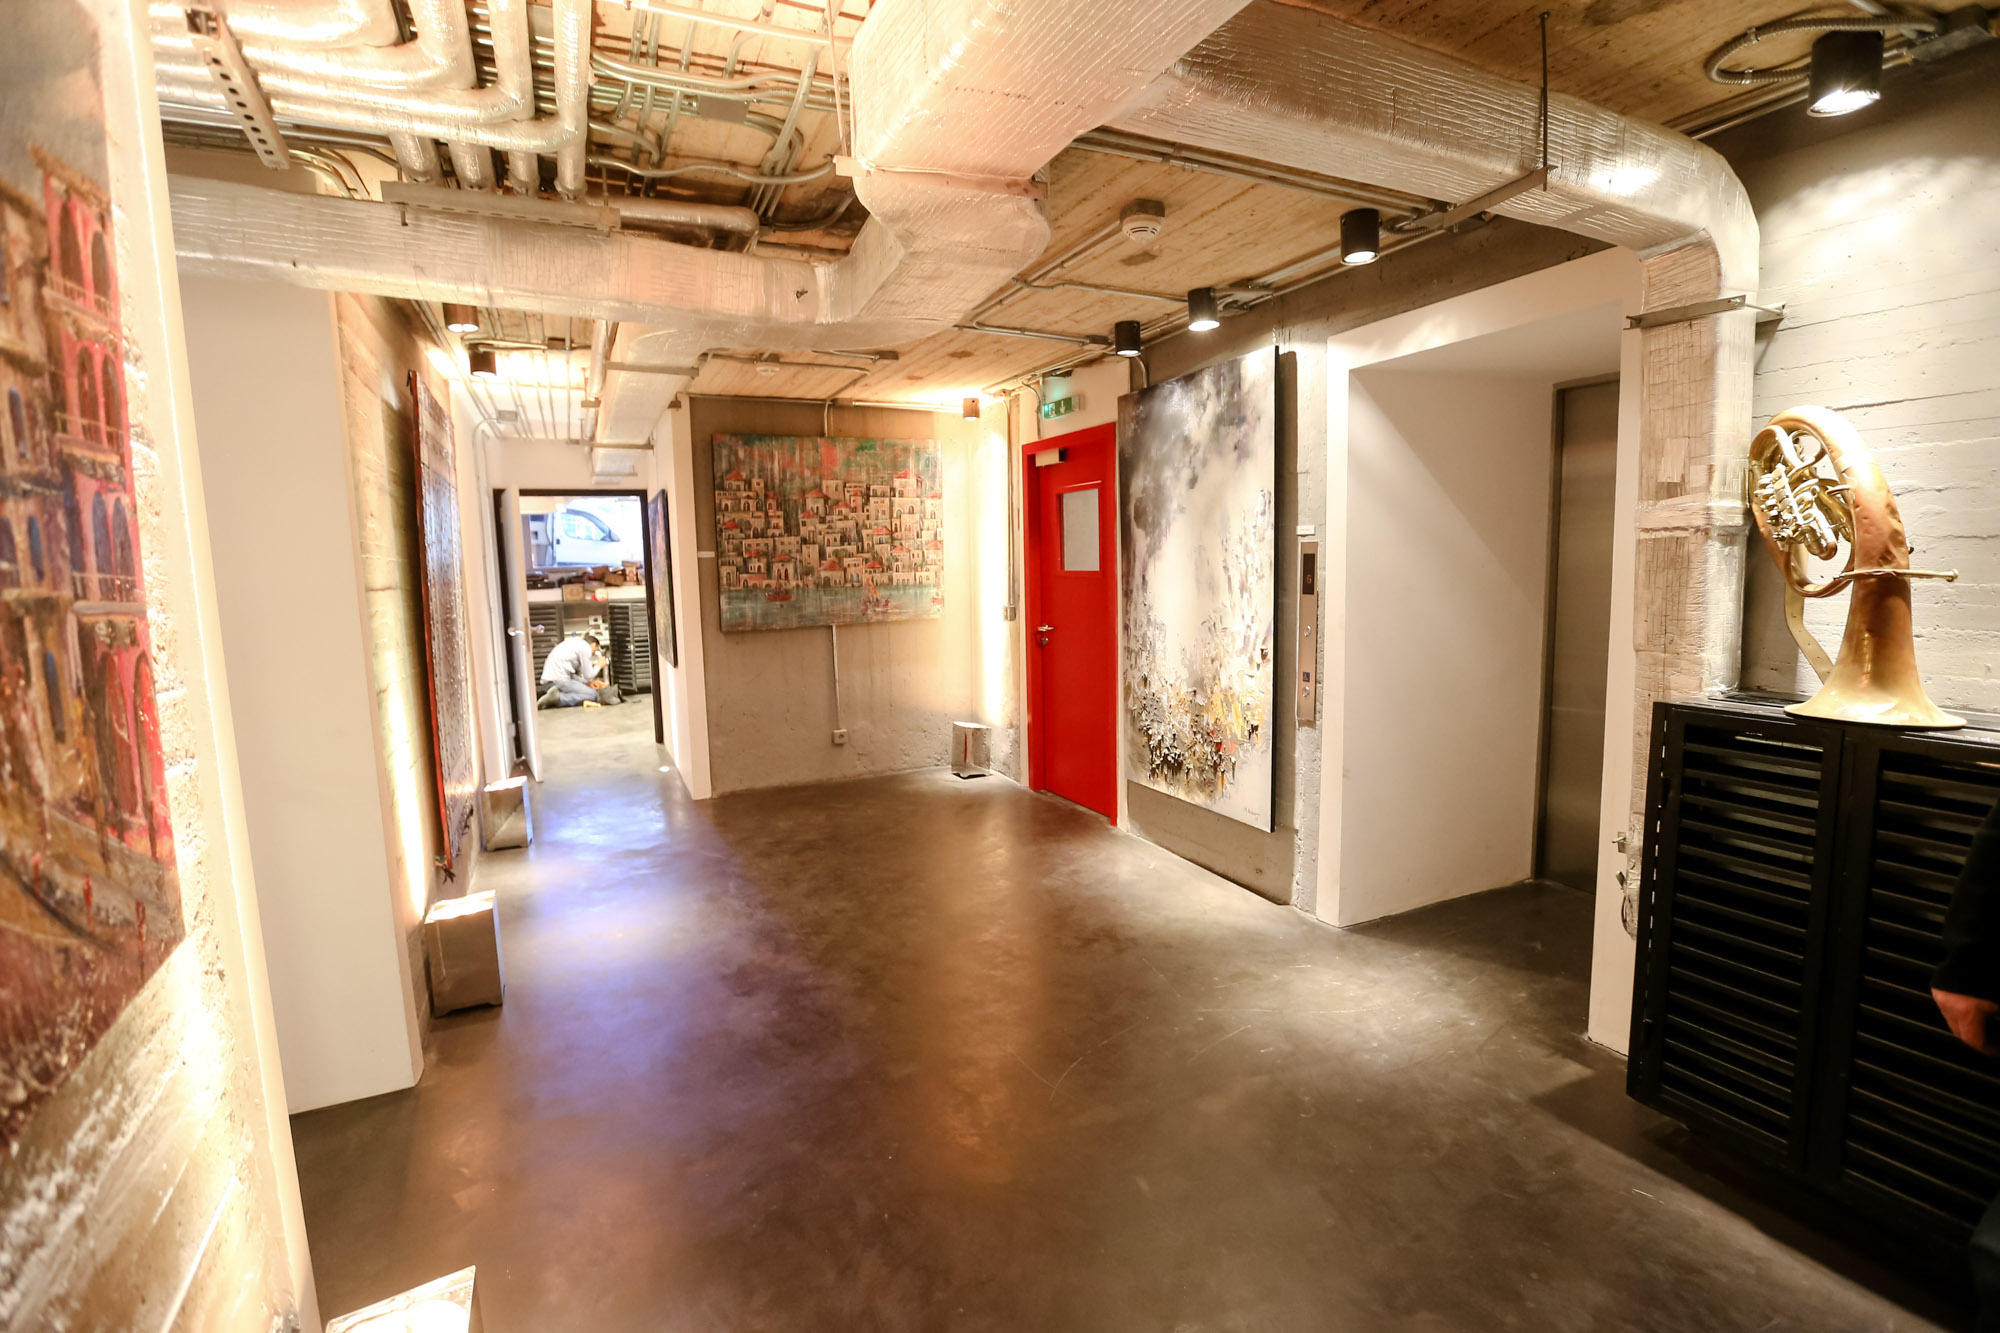 art, history, culture, and memories all in one space